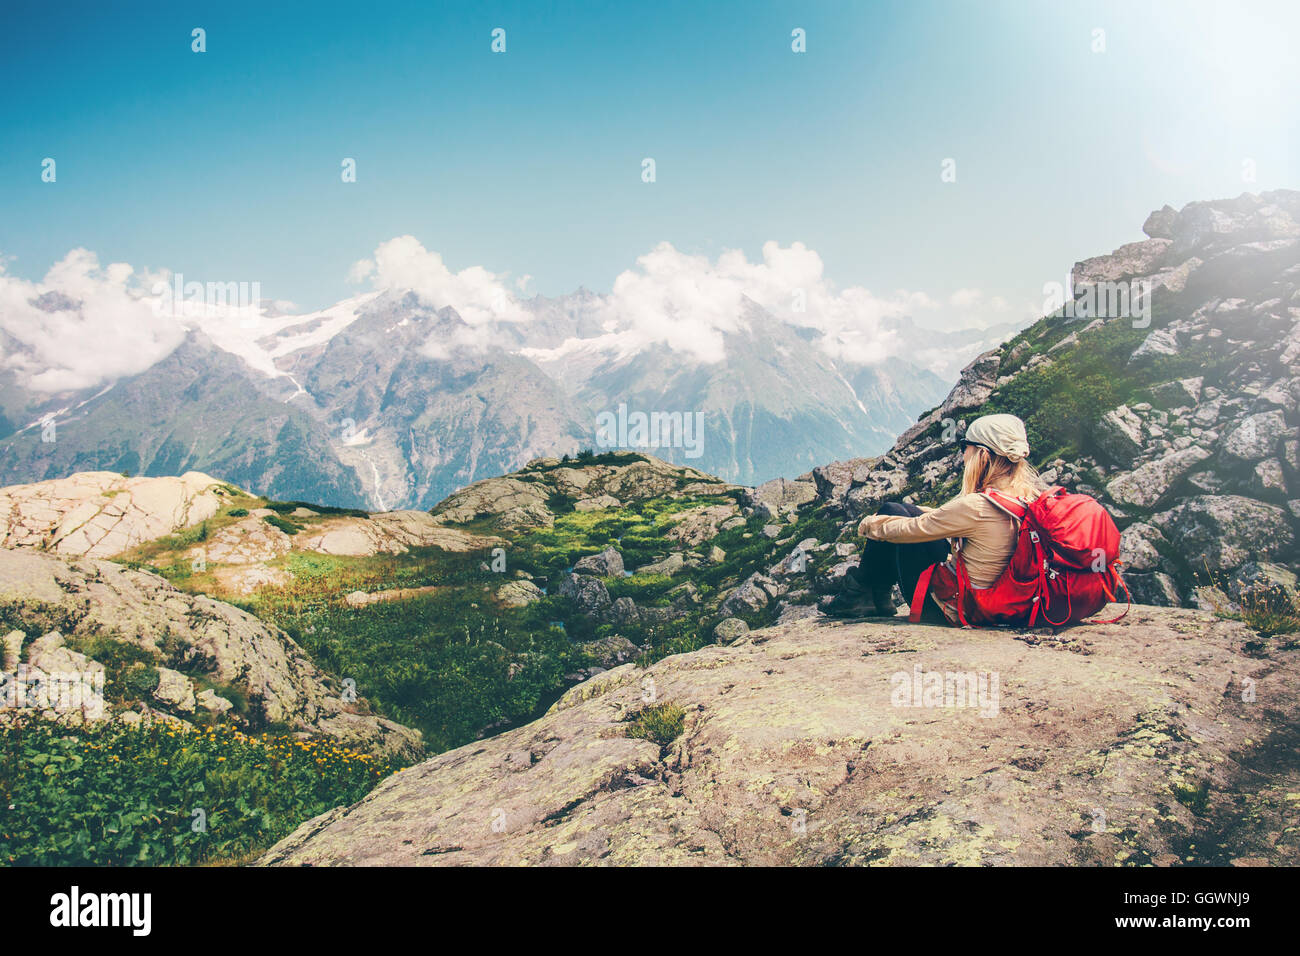 Woman Traveler with backpack relaxing with mountains serenity view Travel Lifestyle concept hiking adventure summer - Stock Image